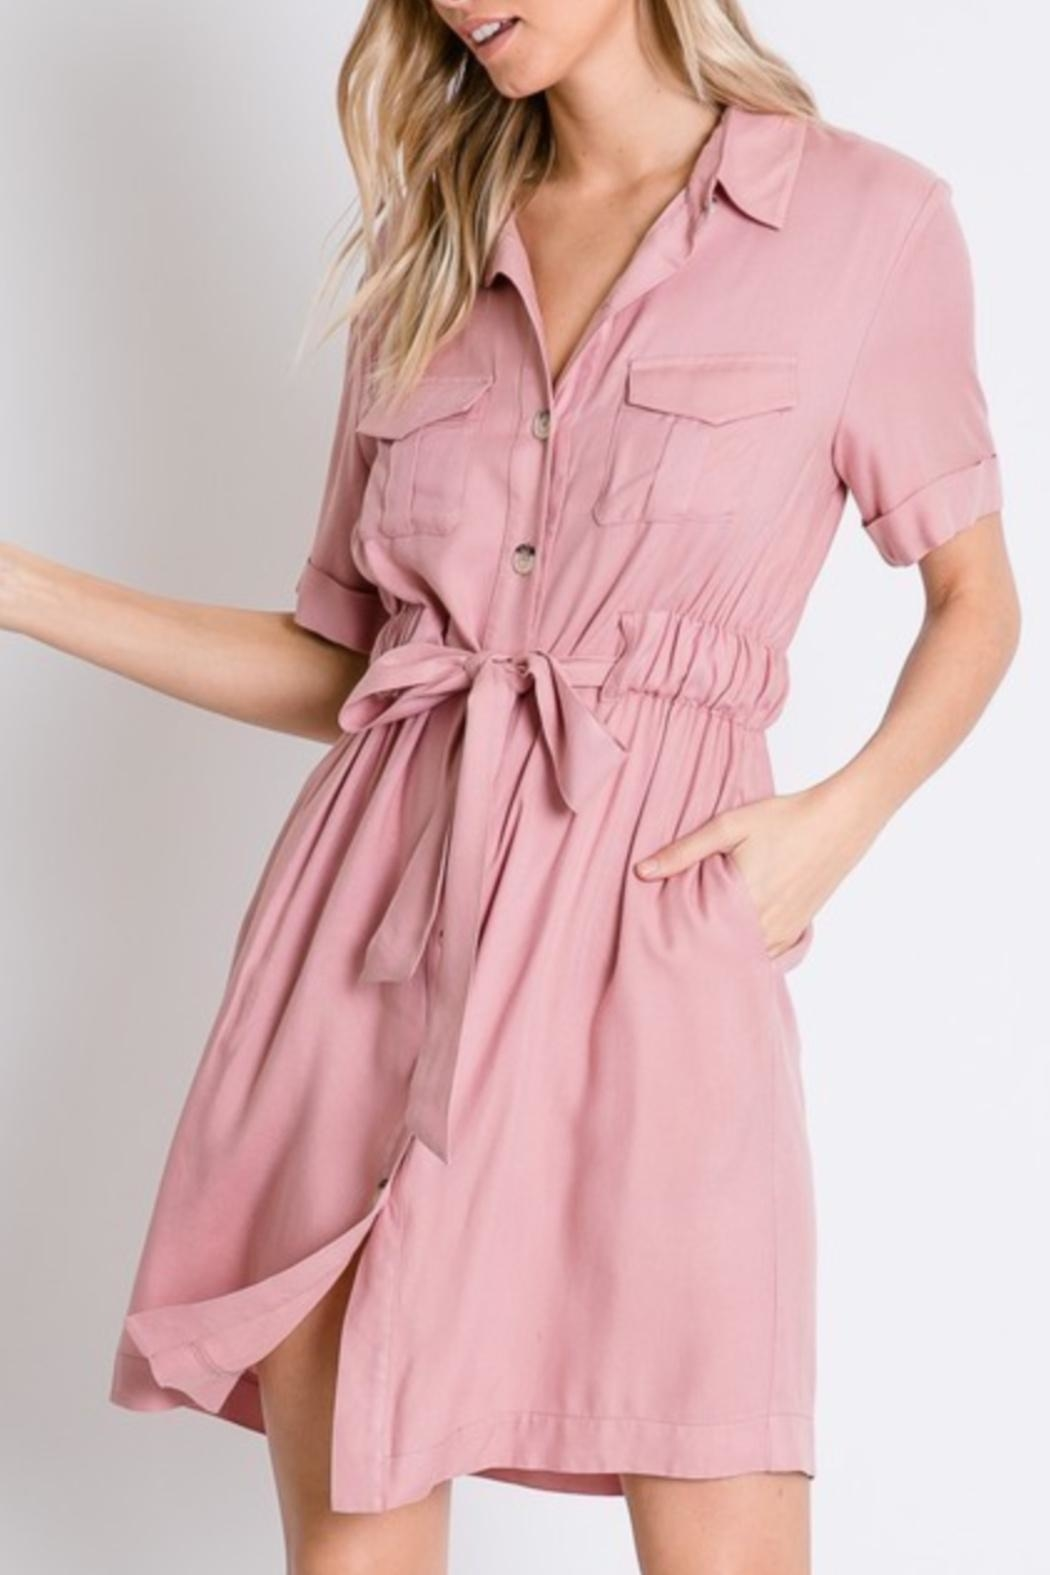 Davi & Dani Button Down Shirt-Dress - Front Full Image